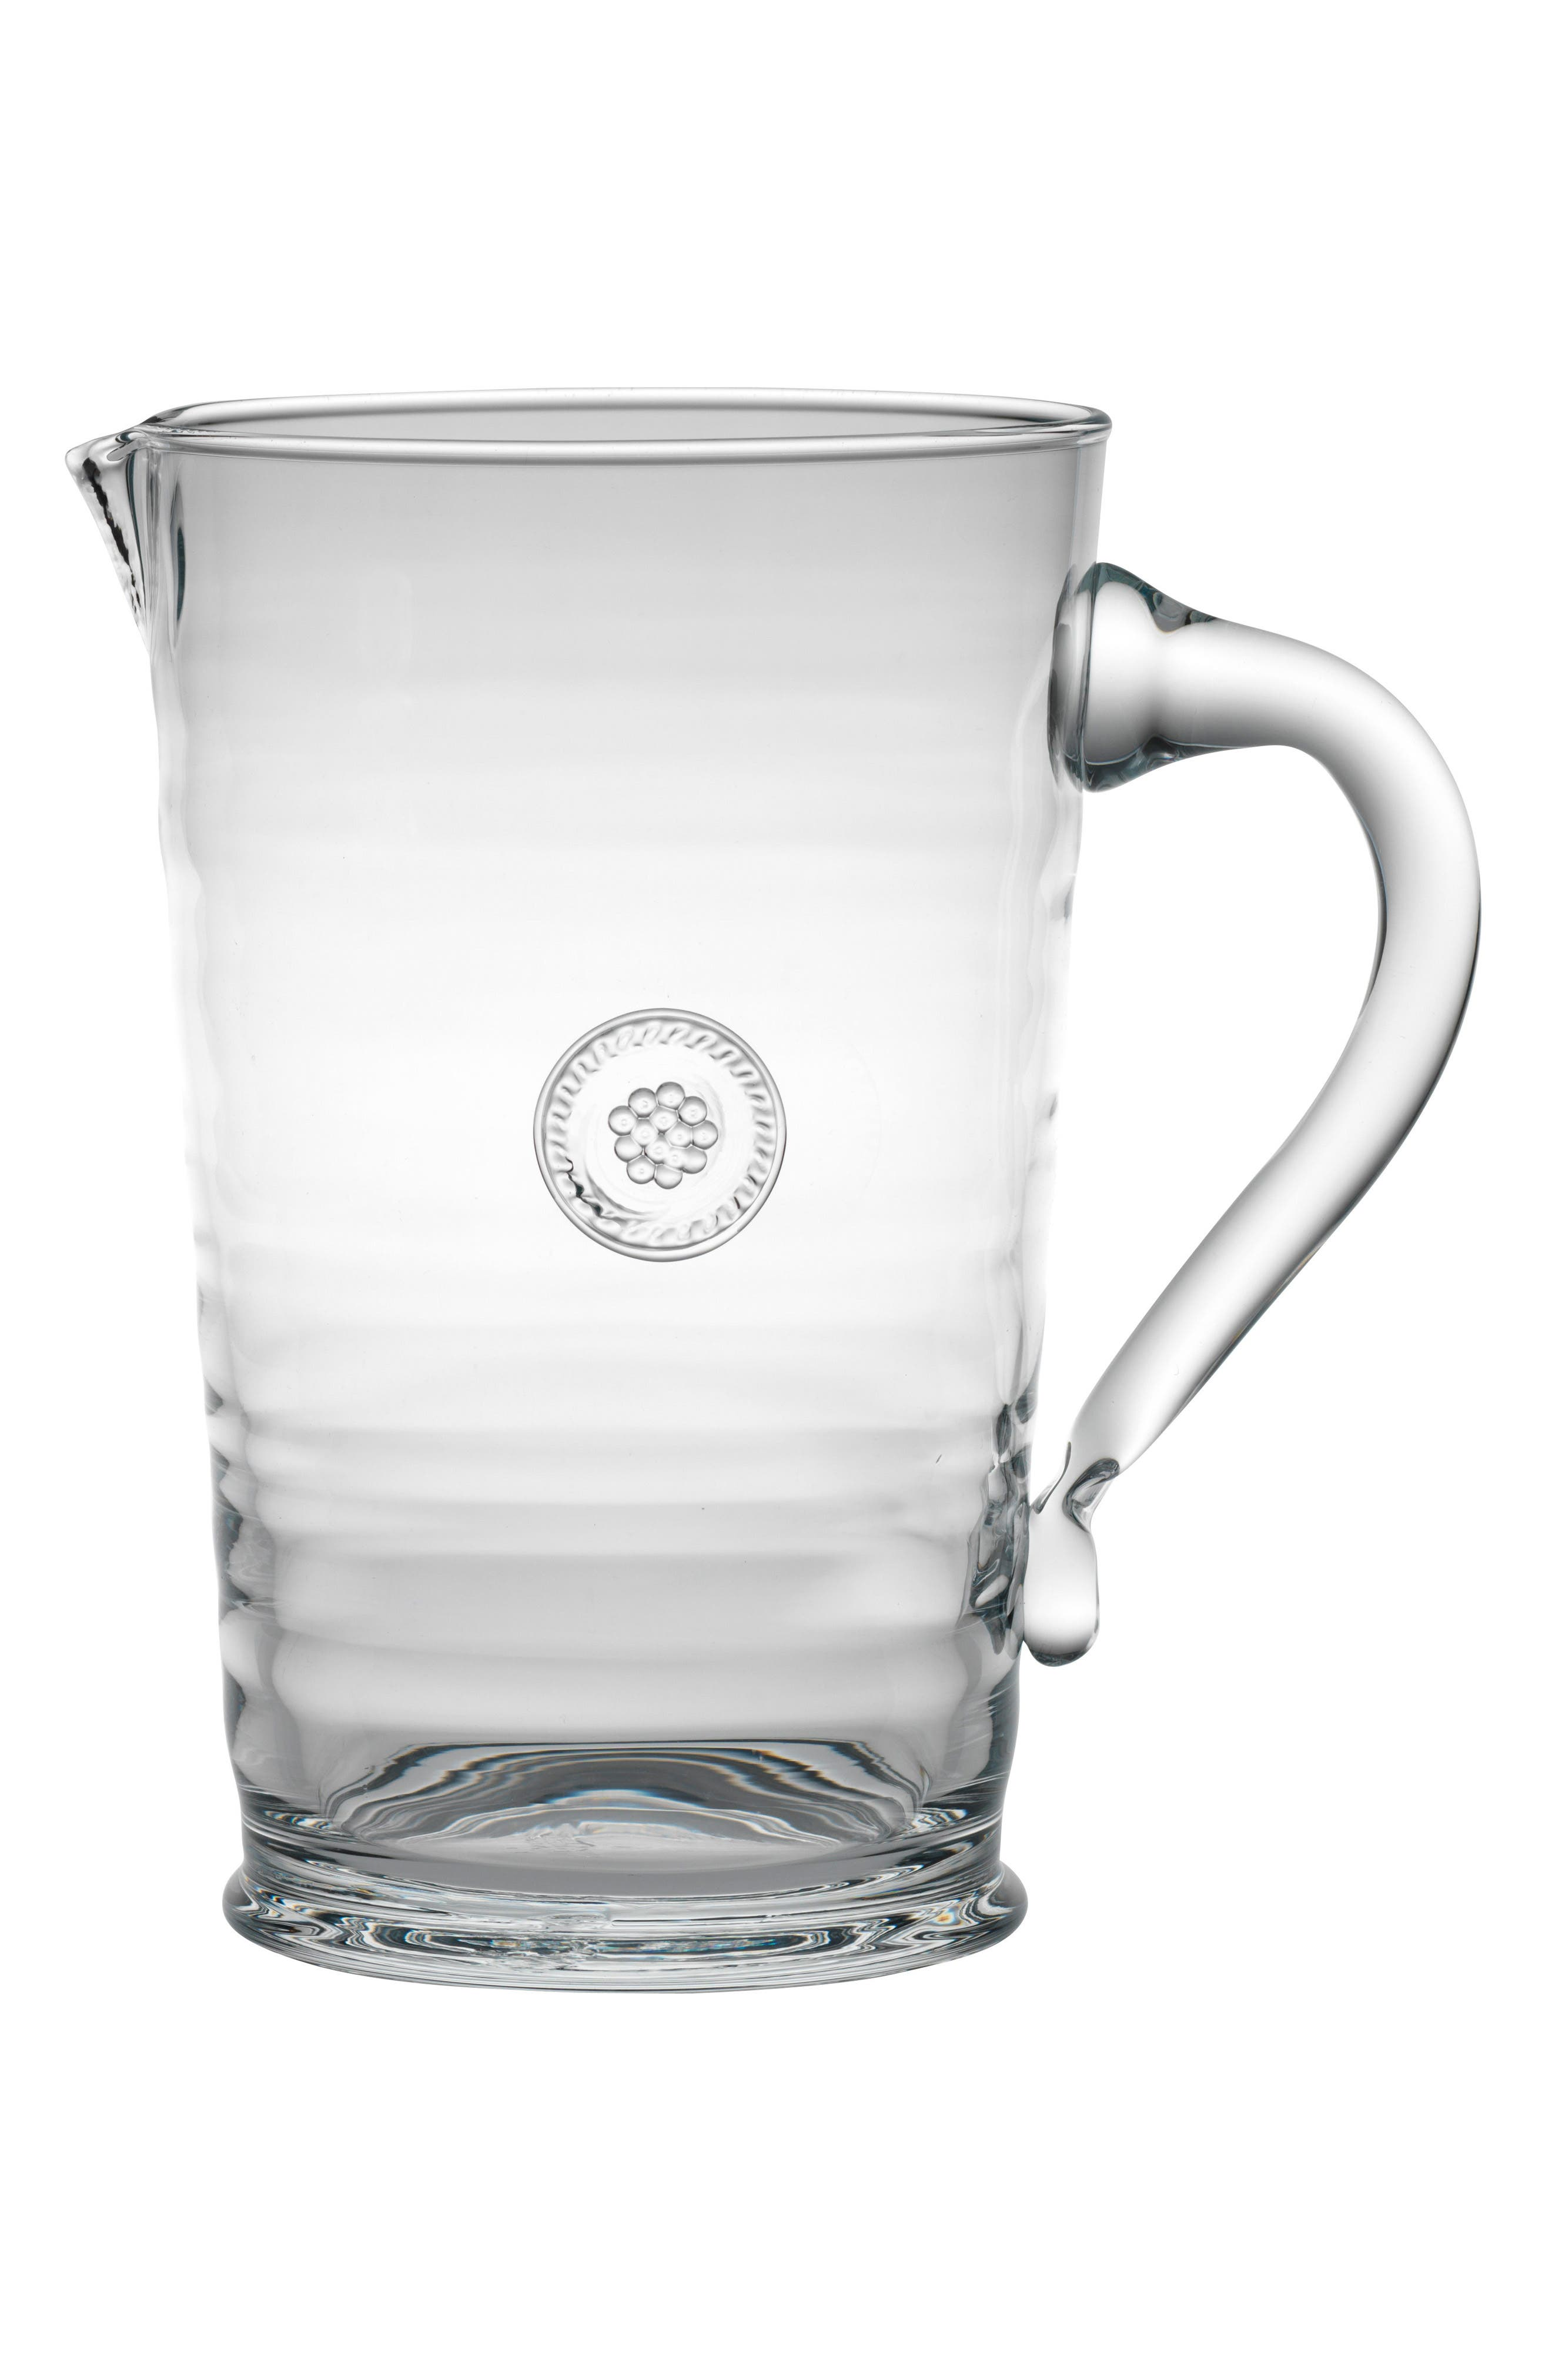 Berry & Thread Glass Pitcher,                             Alternate thumbnail 2, color,                             CLEAR